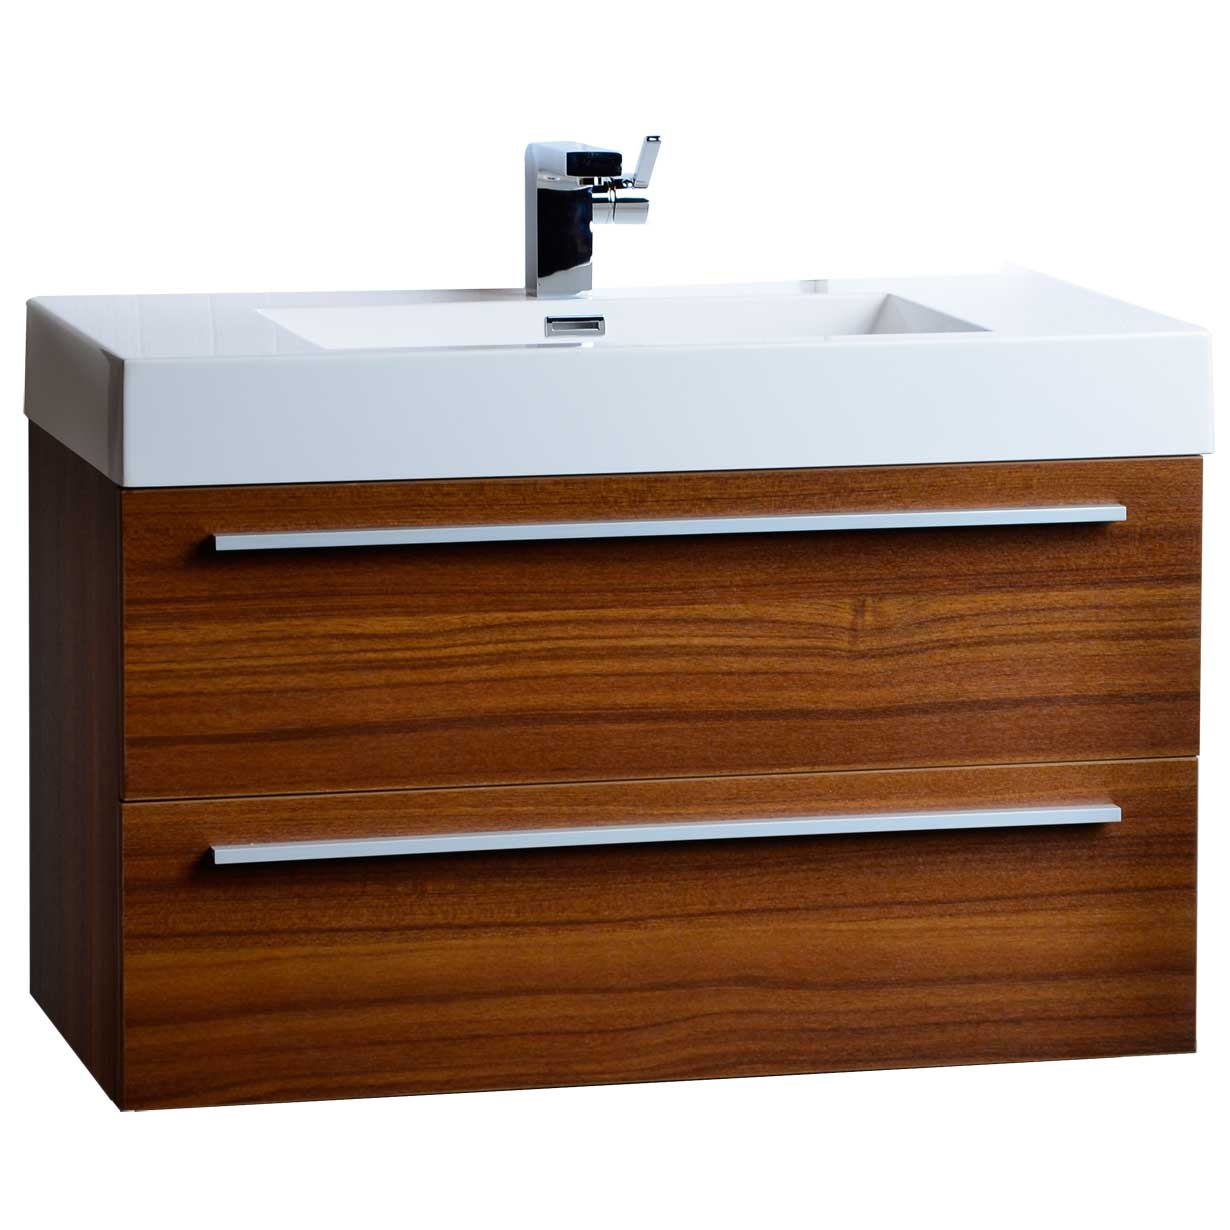 355 wall mount contemporary bathroom vanity teak tn m900 tk